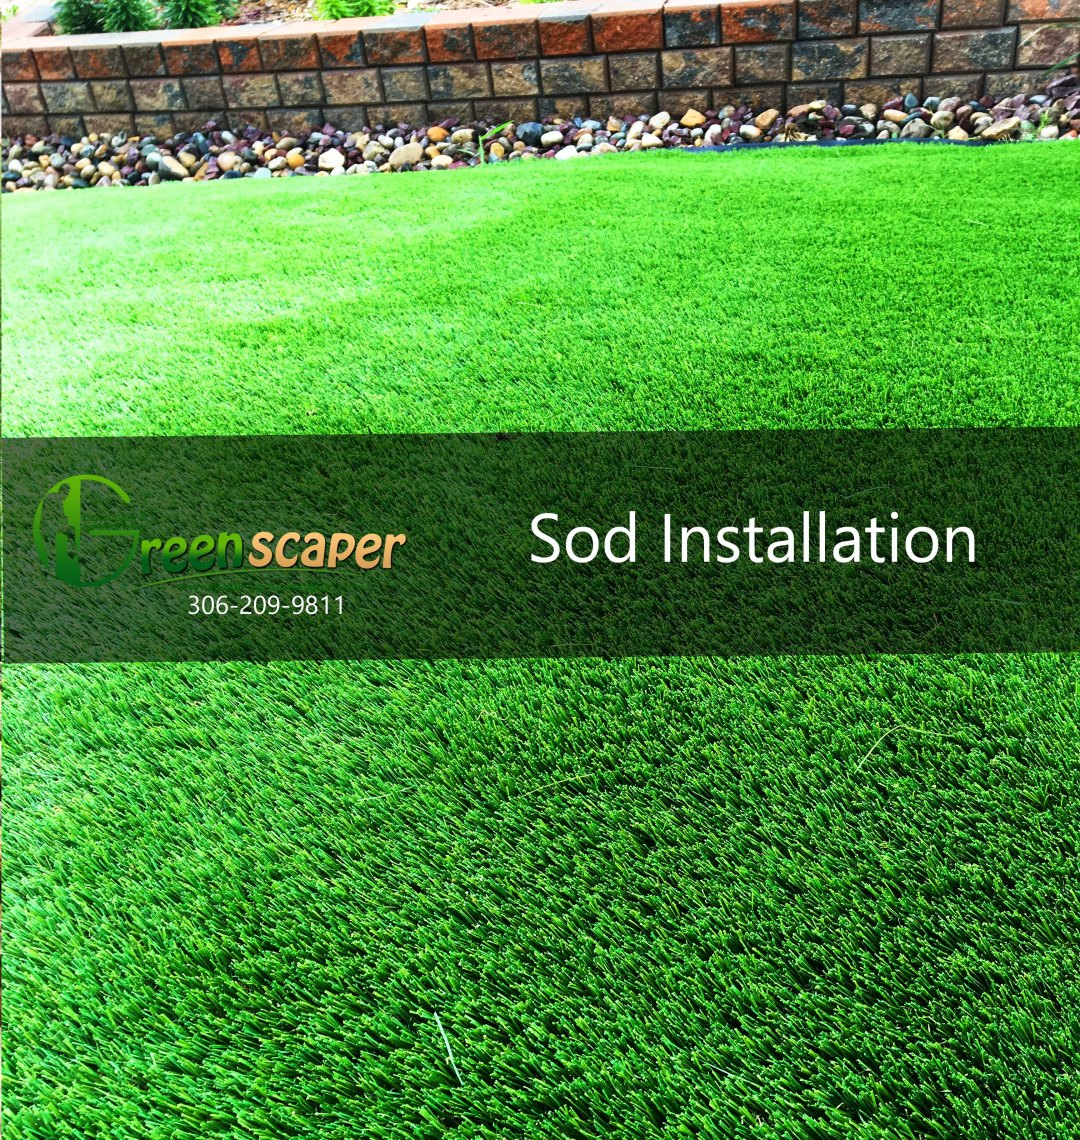 Sod Landscaping Project in Regina